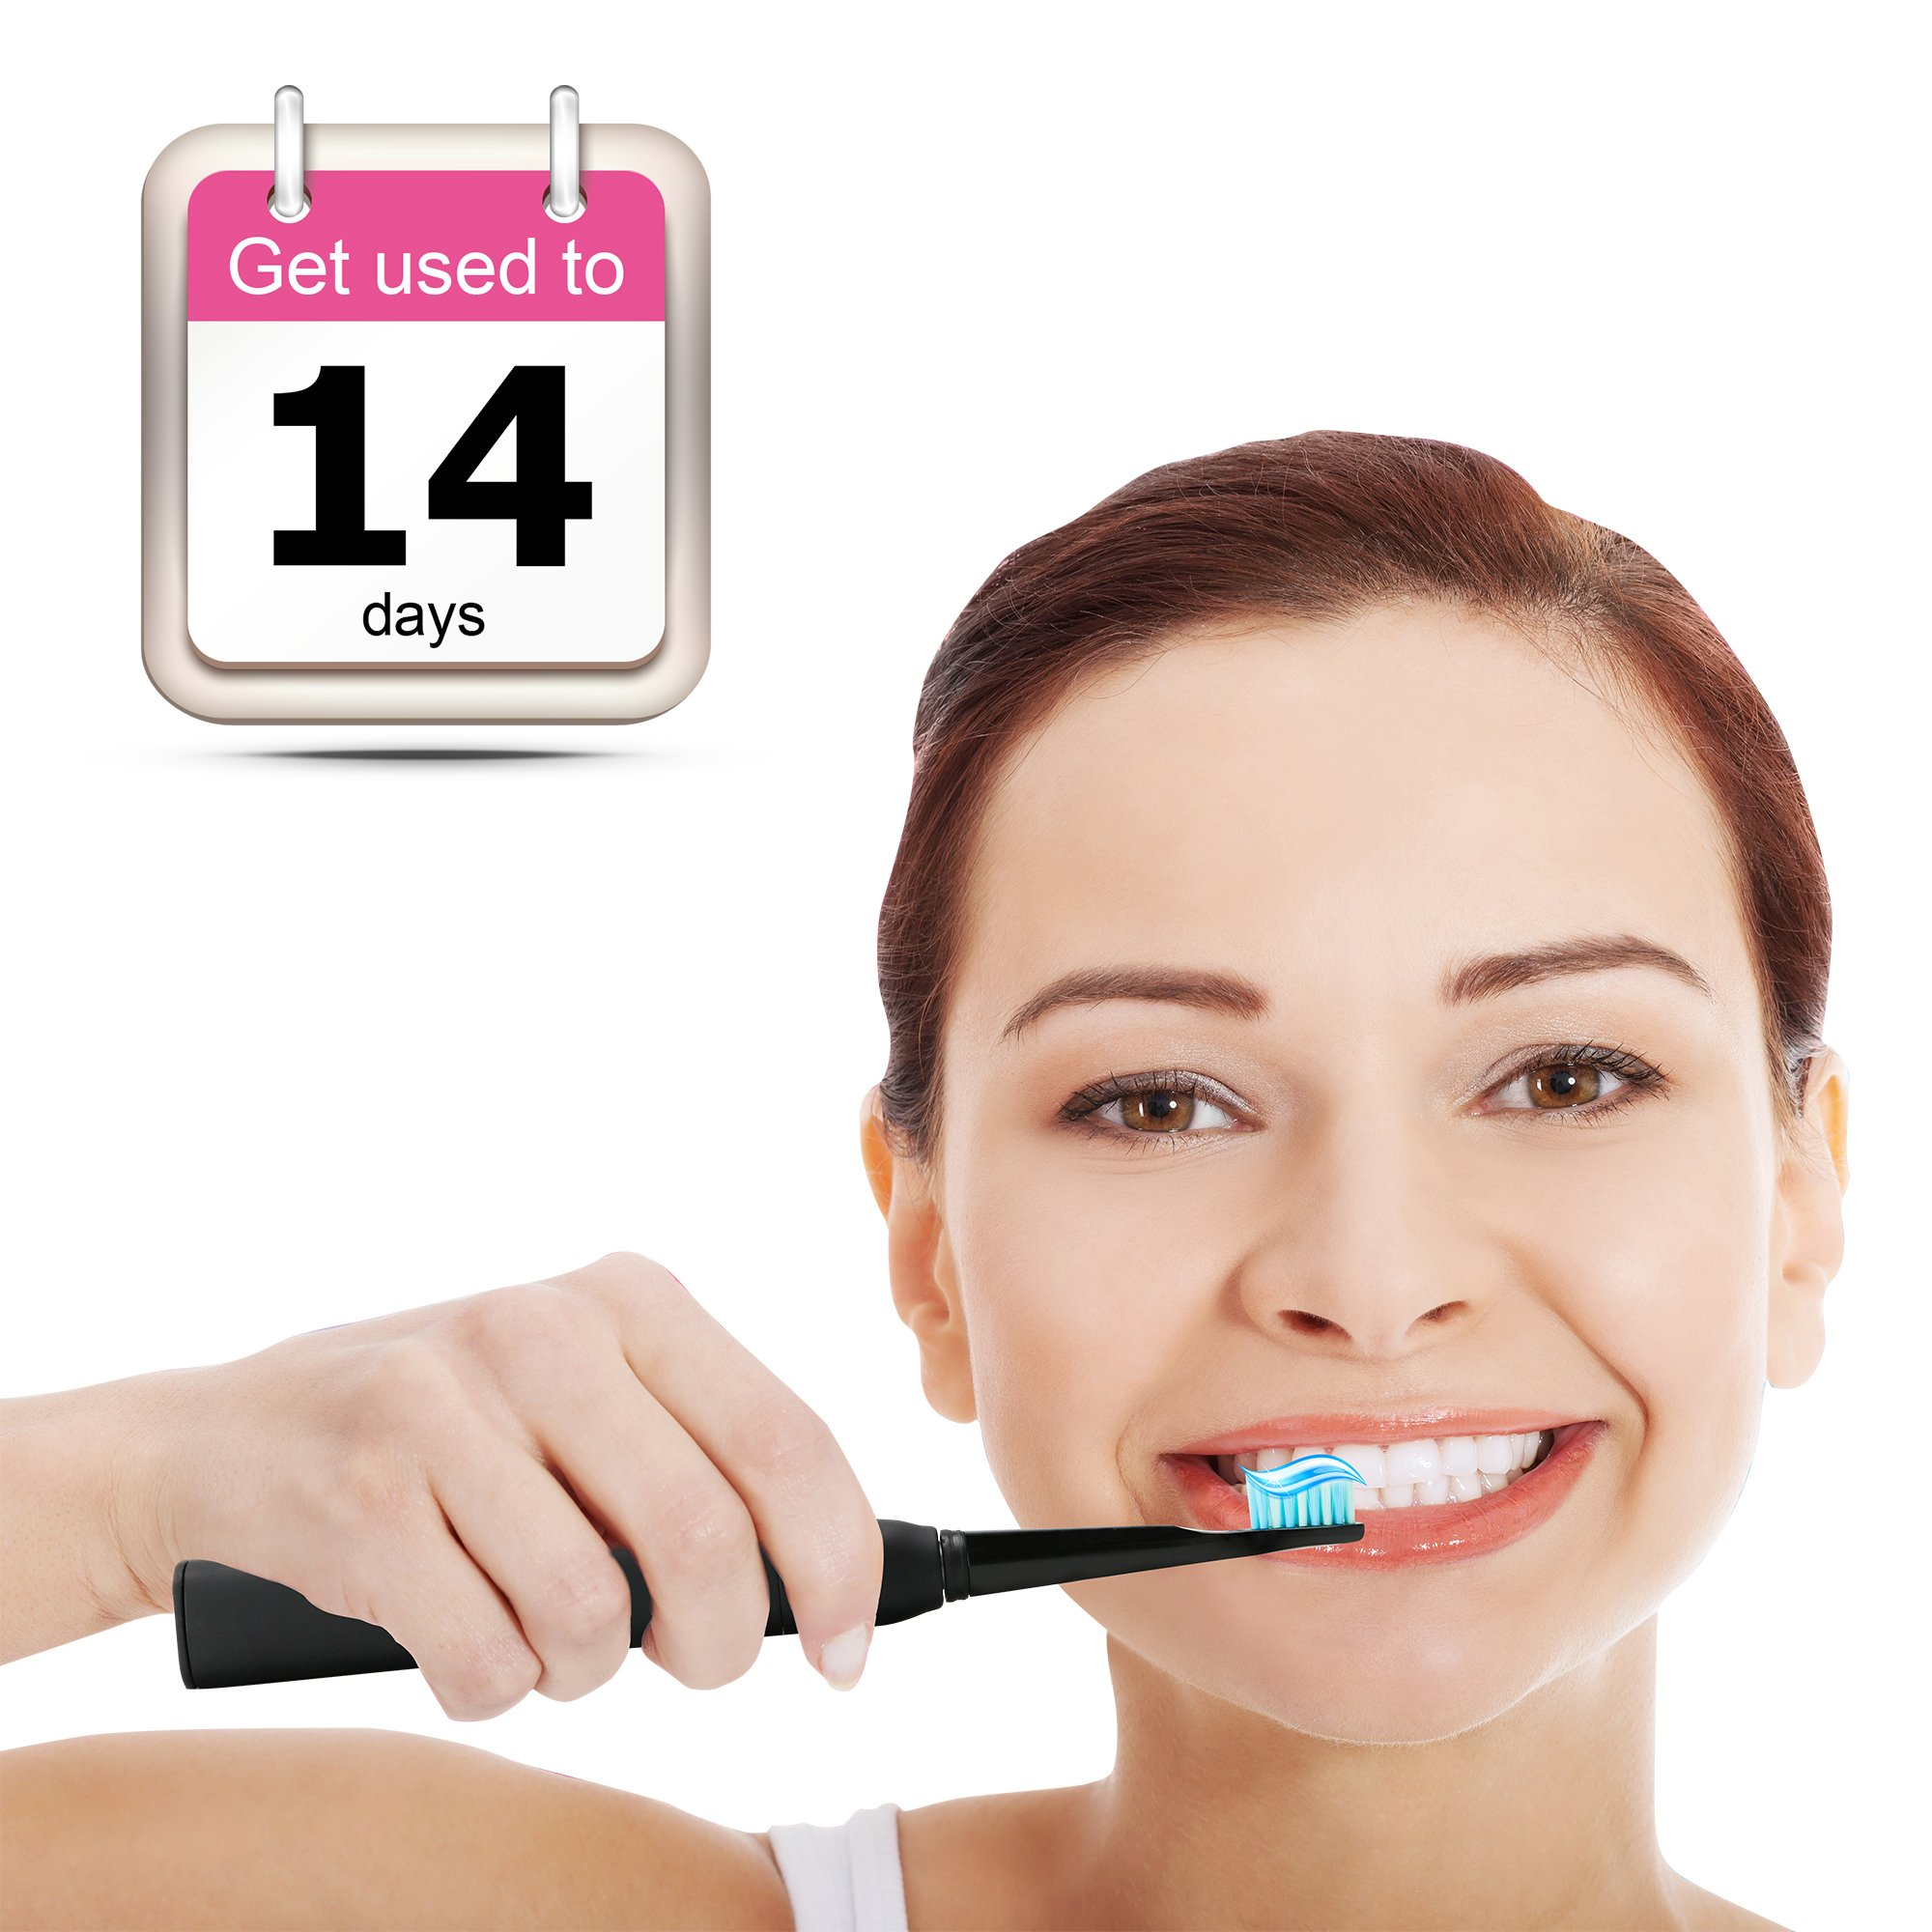 Electric Toothbrush Clean as Dentist Rechargeable Sonic Toothbrush with Smart Timer 4 Hours Charge Minimum 30 Days Use 5 Optional Modes Waterproof Fully Washable 3 Replacement Heads Black by Fairywill by Fairywill (Image #7)